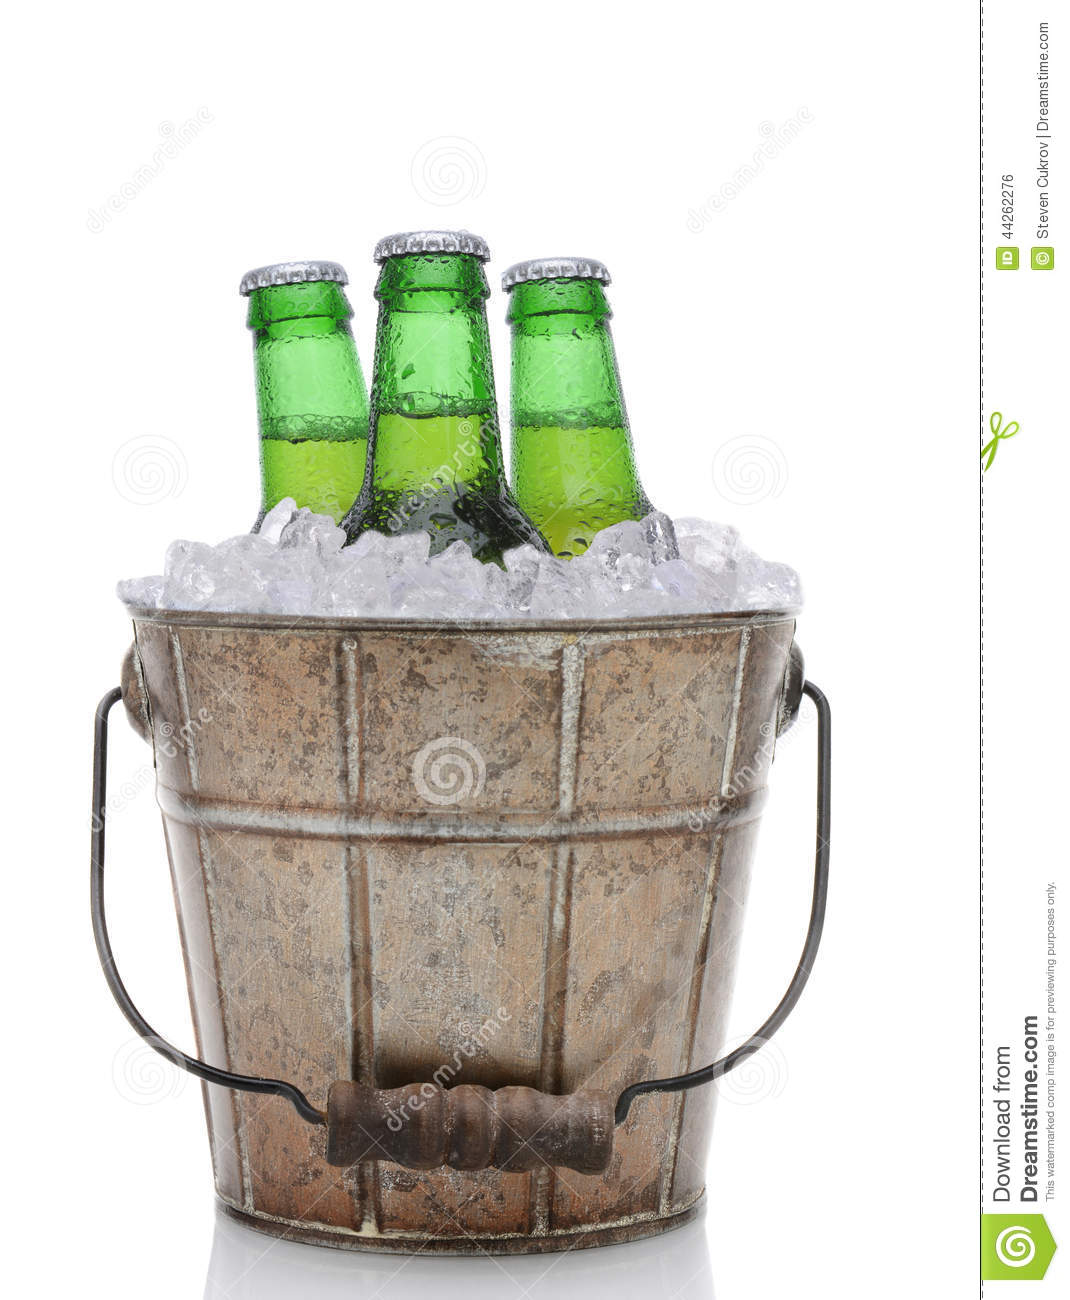 Of An Old Fashioned Beer Bucket With Three Green Bottles Of Cold Beer